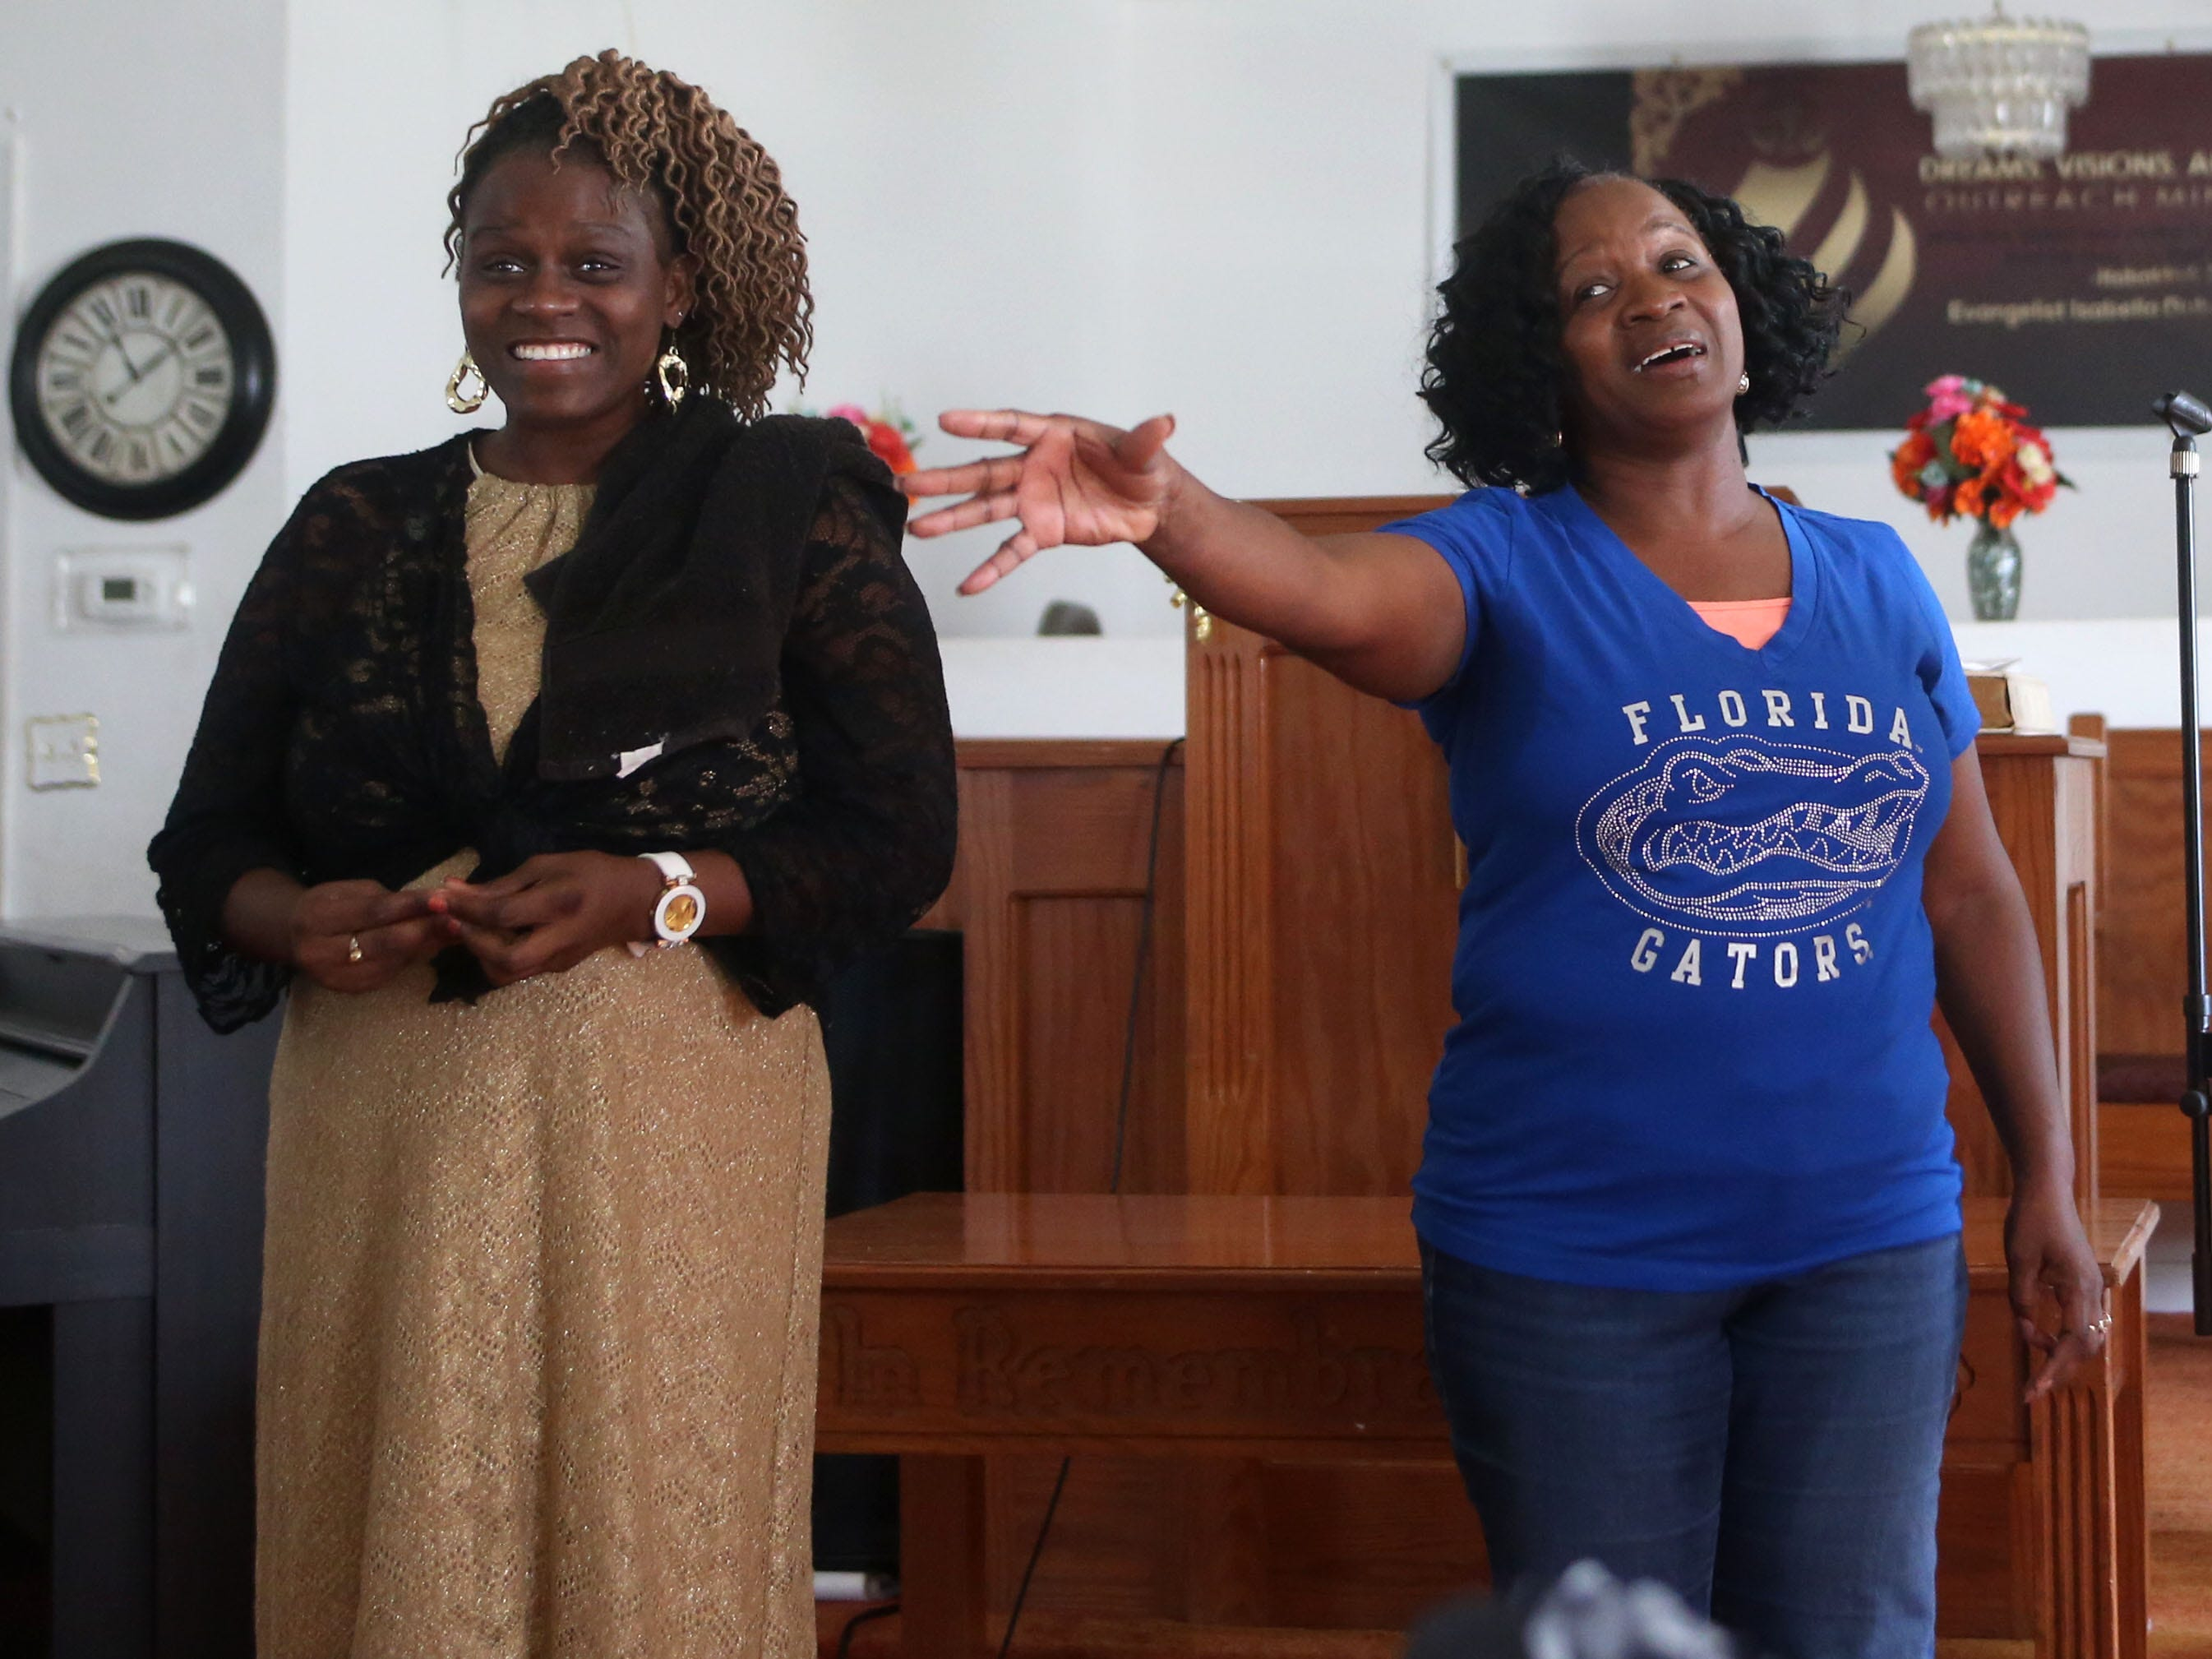 Jeanella Hall, 38, and Isabella Dubose, 54, aunts of Demashell Bass, a woman who could not receive medical attention and died during the hurricane speak at the Dream, Vision, and Destiny (DVD) Ministry in Gretna, Fla., on Sunday Oct. 14, 2018, after Hurricane Michael hits the Florida panhandle.